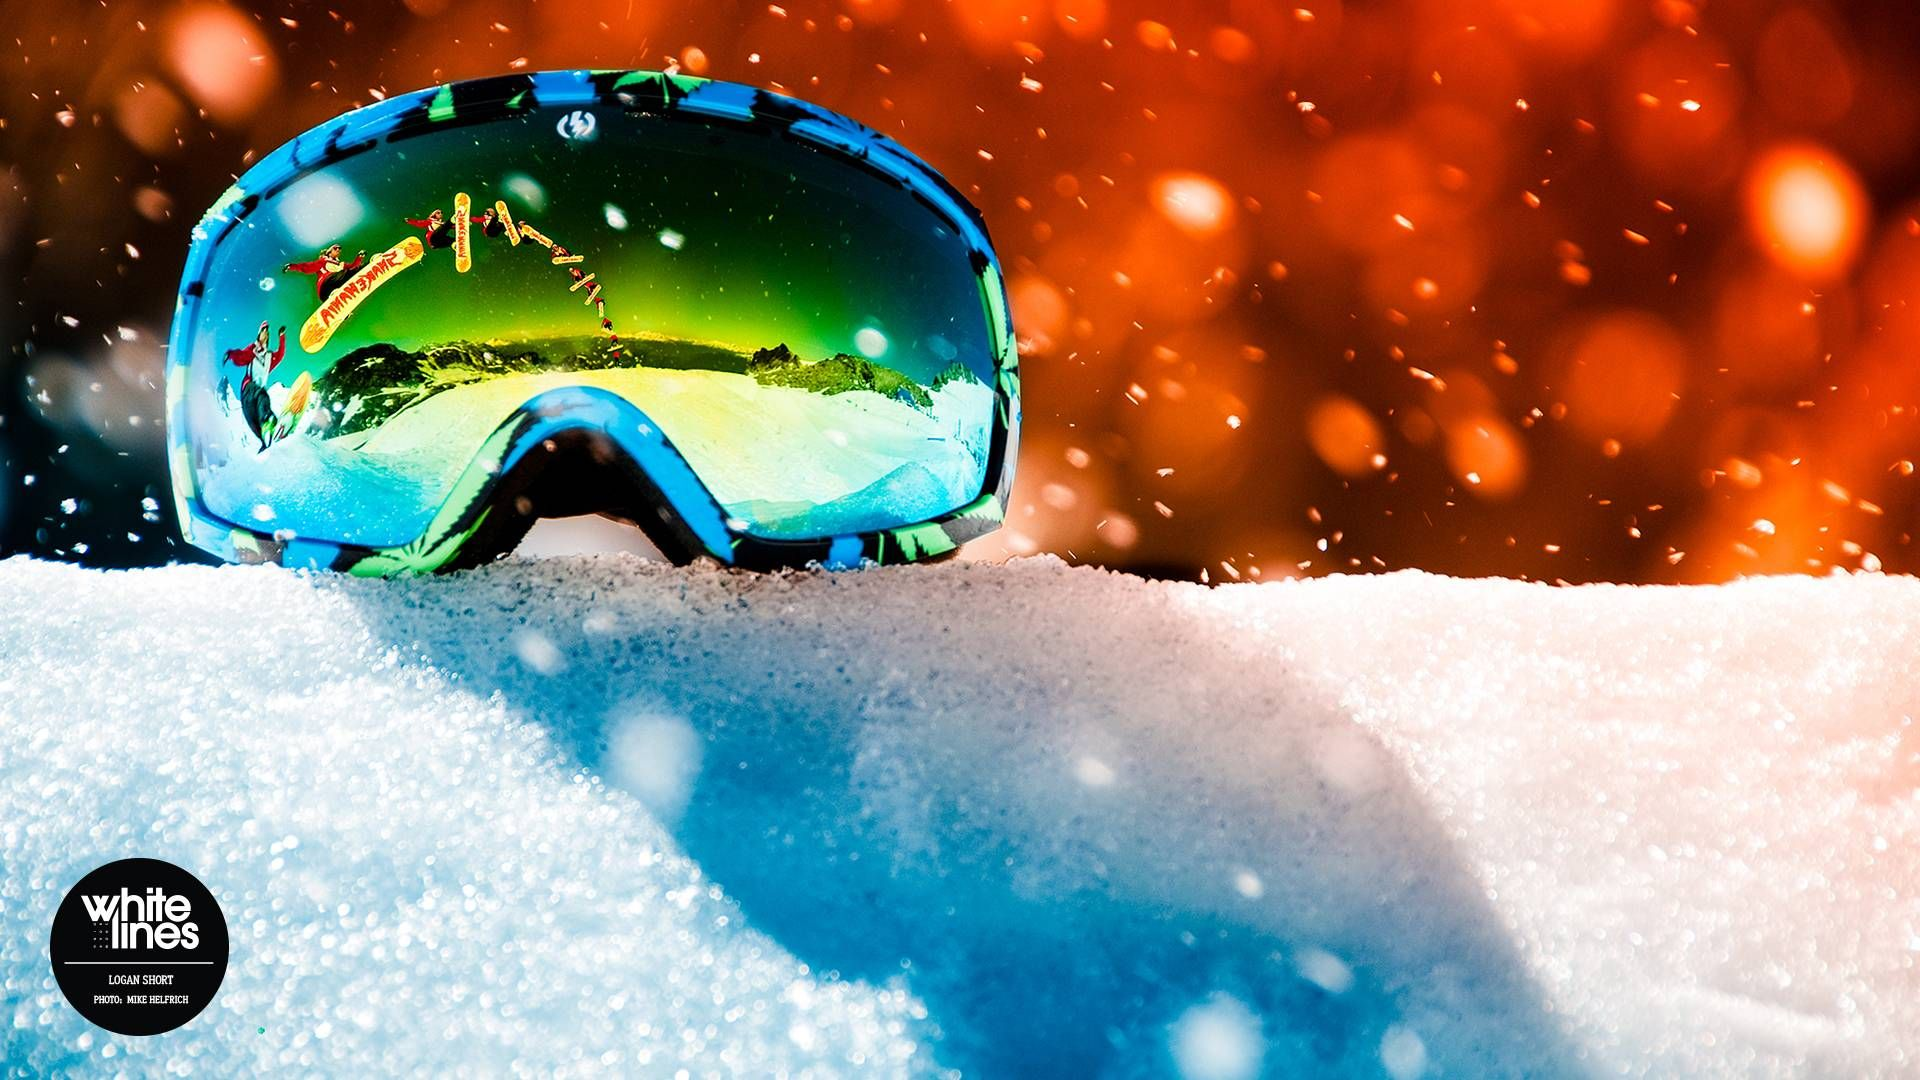 snowboard wallpaper promotionshop for promotional snowboard | hd